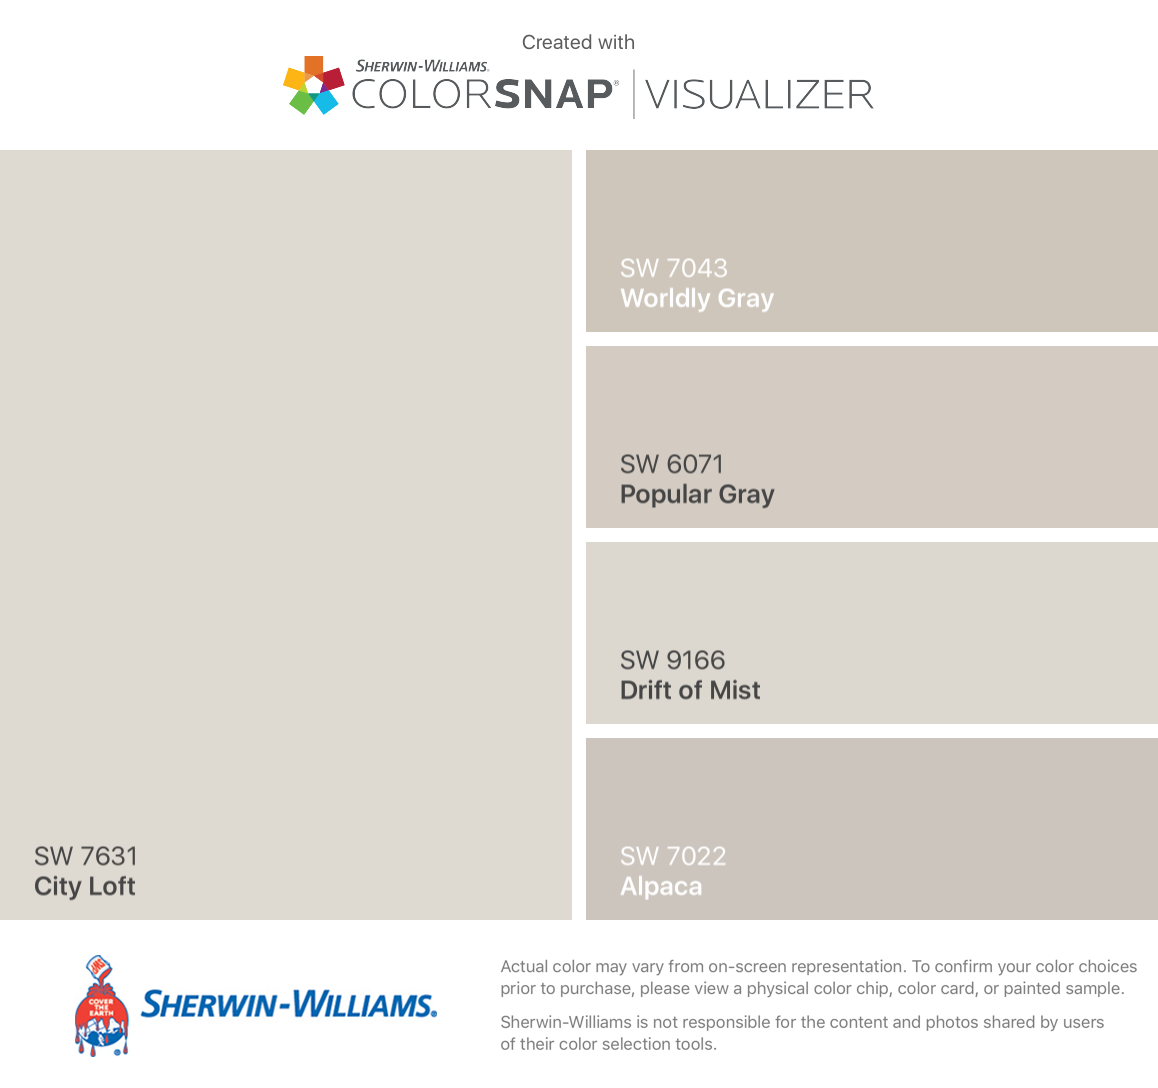 I found these colors with ColorSnap® Visualizer for iPhone by Sherwin-Williams: City Loft (SW 7631), Worldly Gray (SW 7043), Popular Gray (SW 6071), Drift of Mist (SW 9166), Alpaca (SW 7022). #cityloftsherwinwilliams